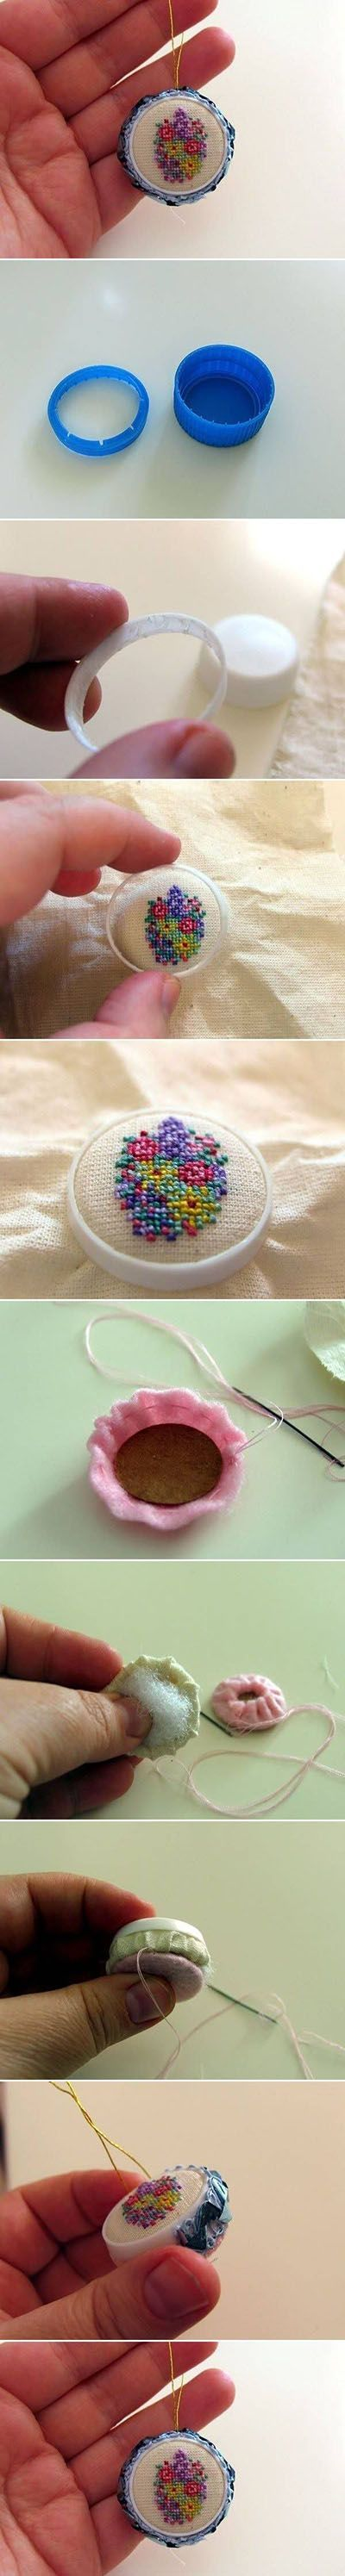 best 20+ bead bottle ideas on pinterest | bottle cap jewelry, how